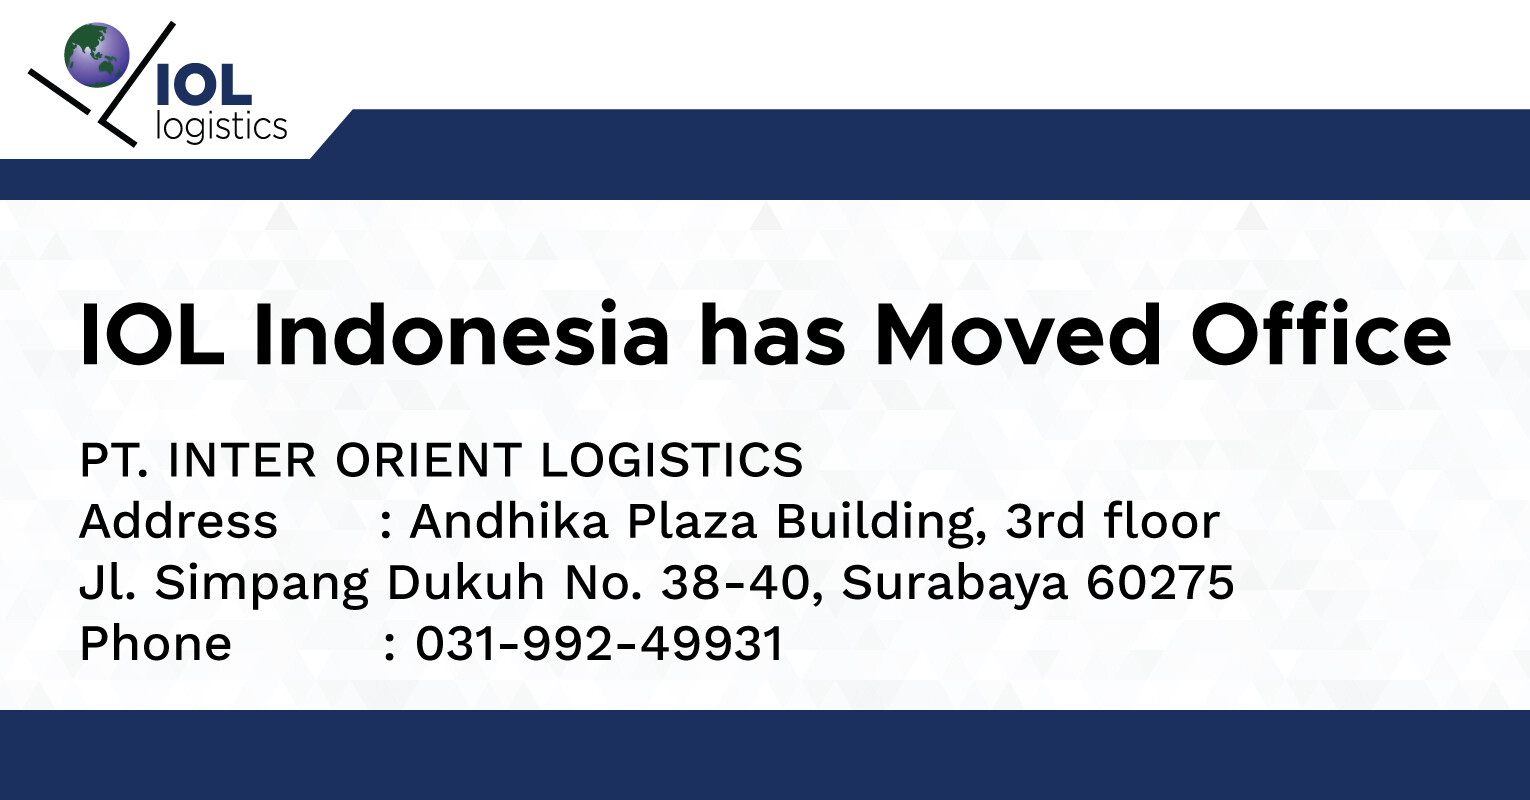 IOL Indonesia has moved office